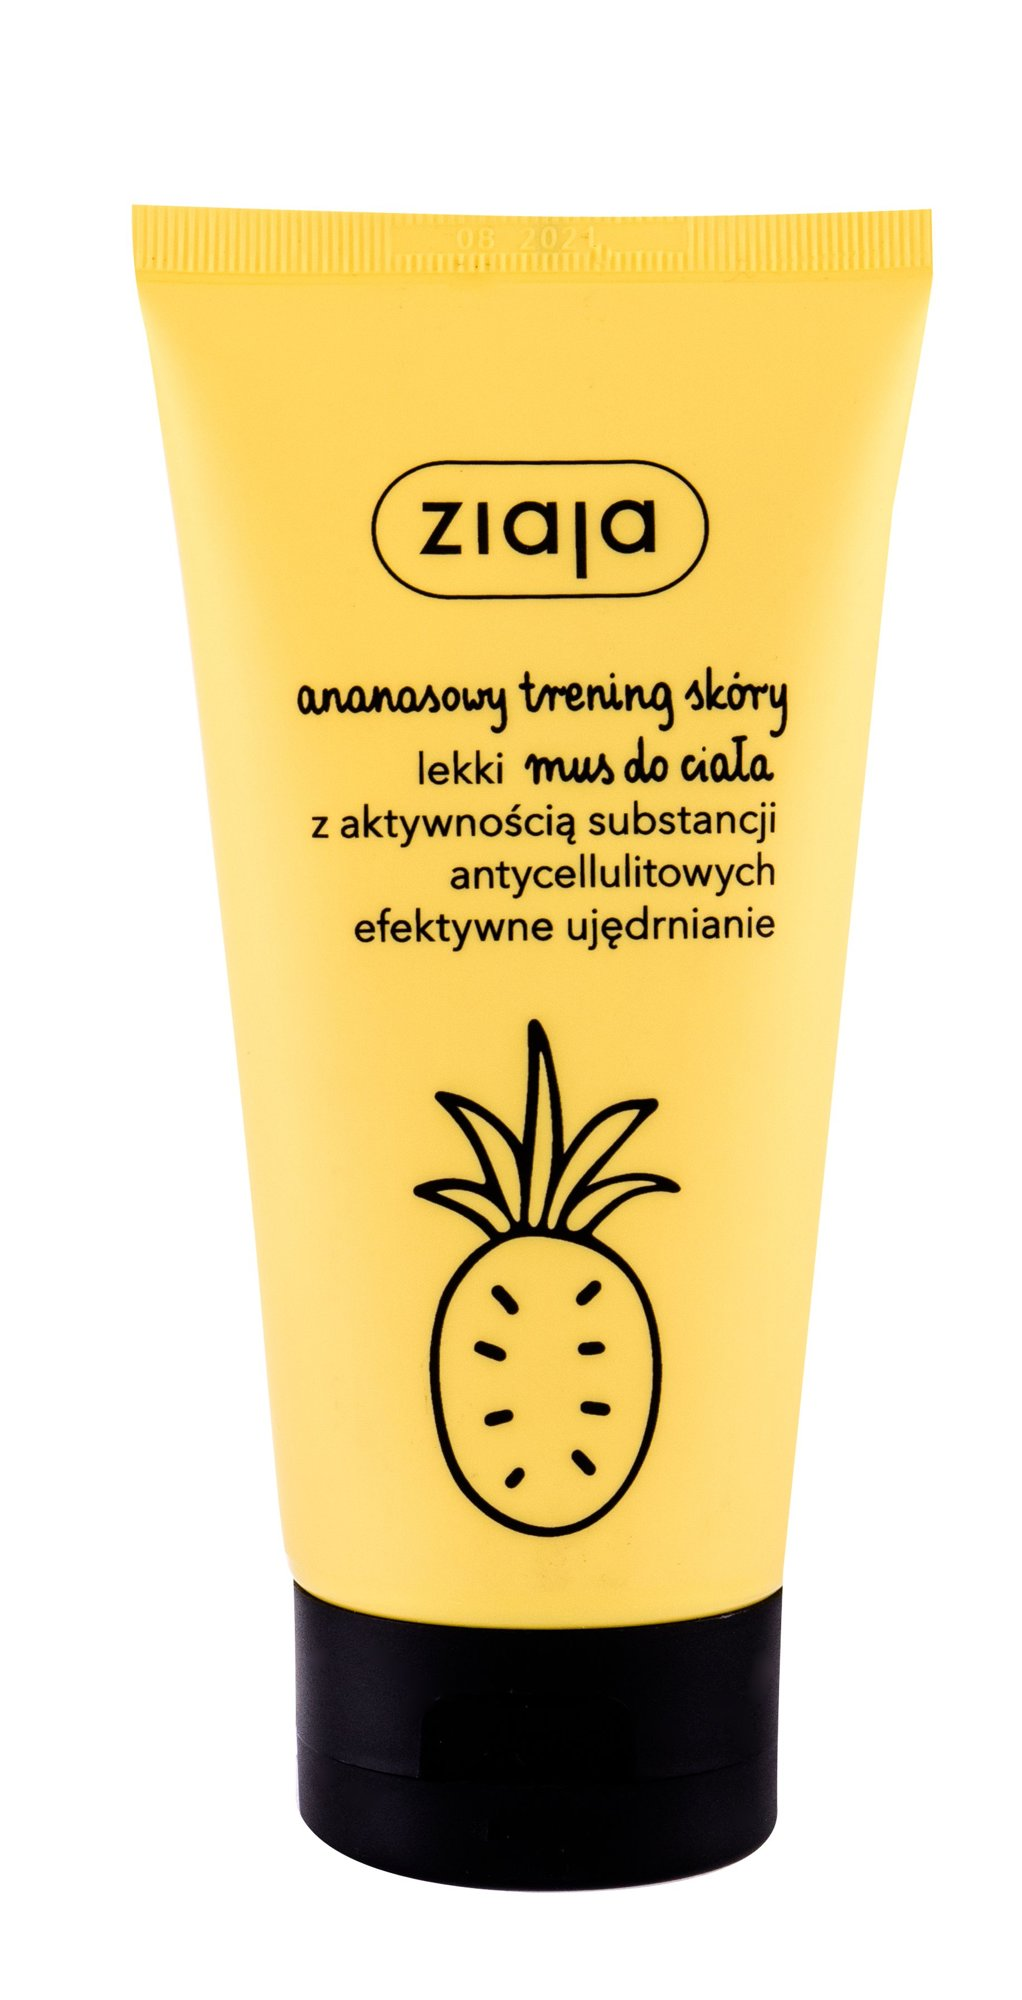 Ziaja Pineapple Body Foam, Proti celulitíde a striám 160ml